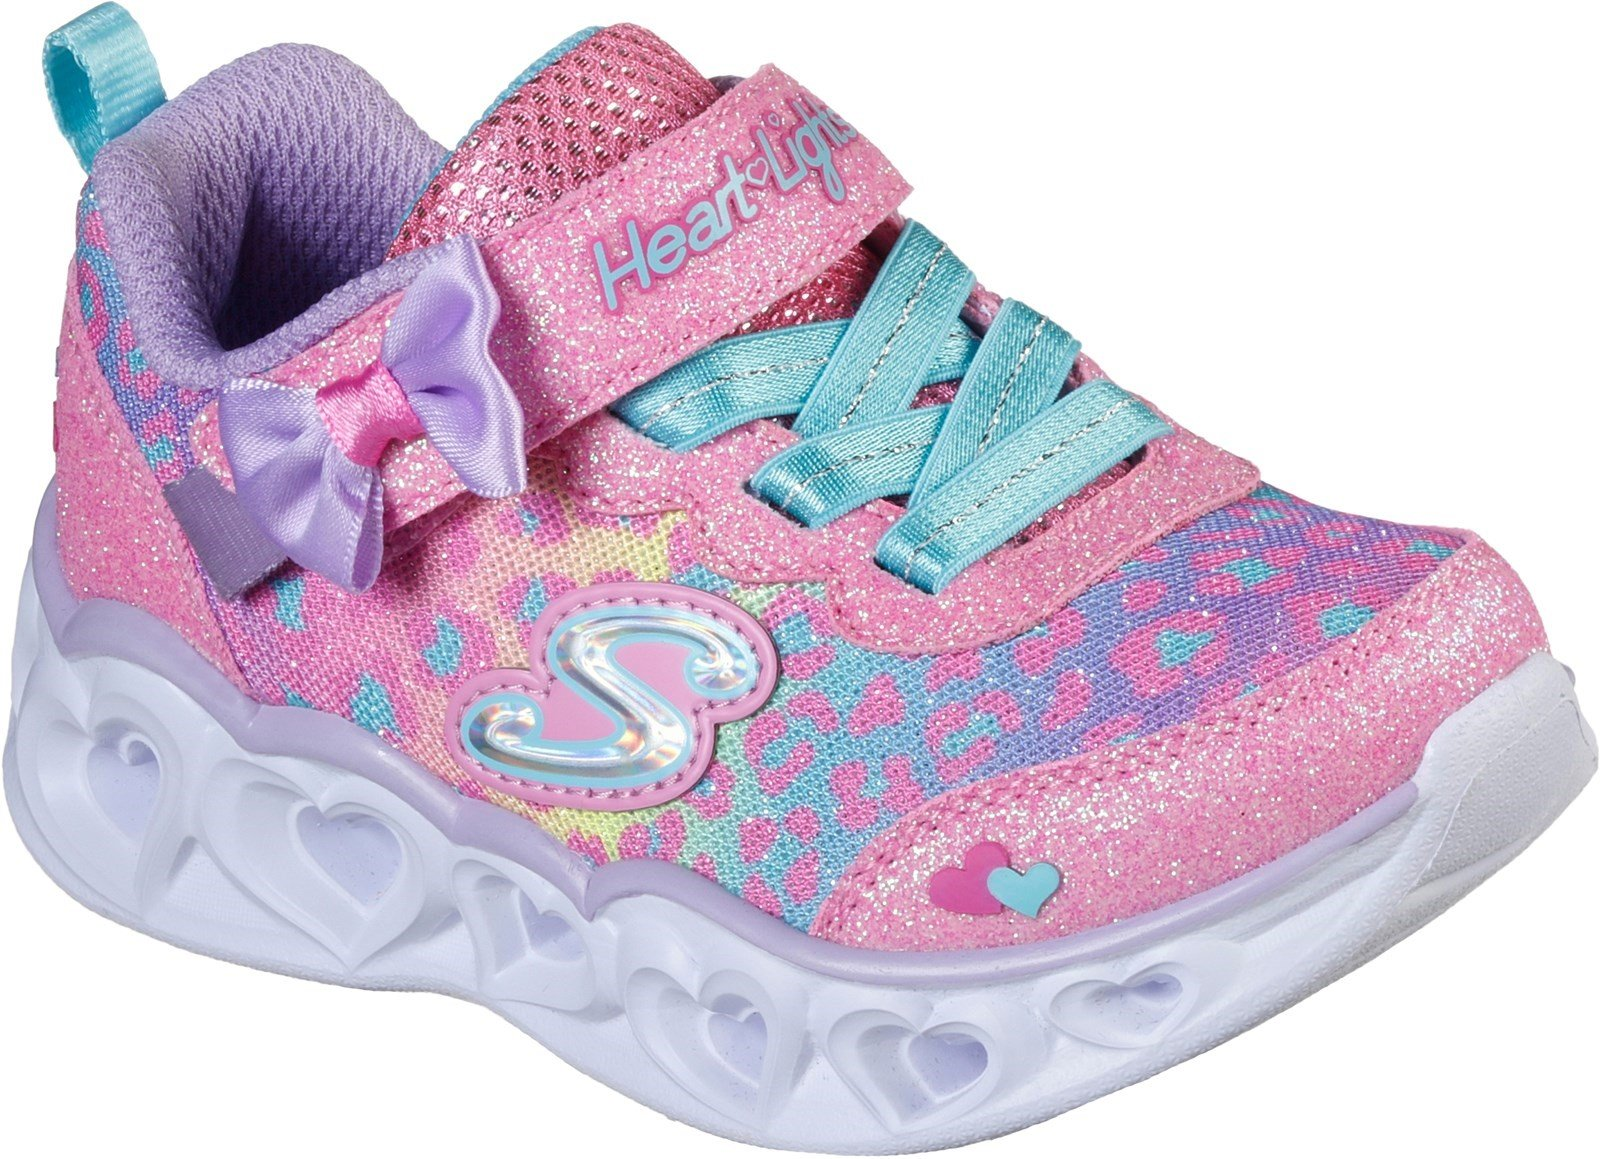 Skechers Kid's Heart Lights Touch Fastening Trainer Various Colours 31134 - Hot Pink/Turquoise/Lavender 4